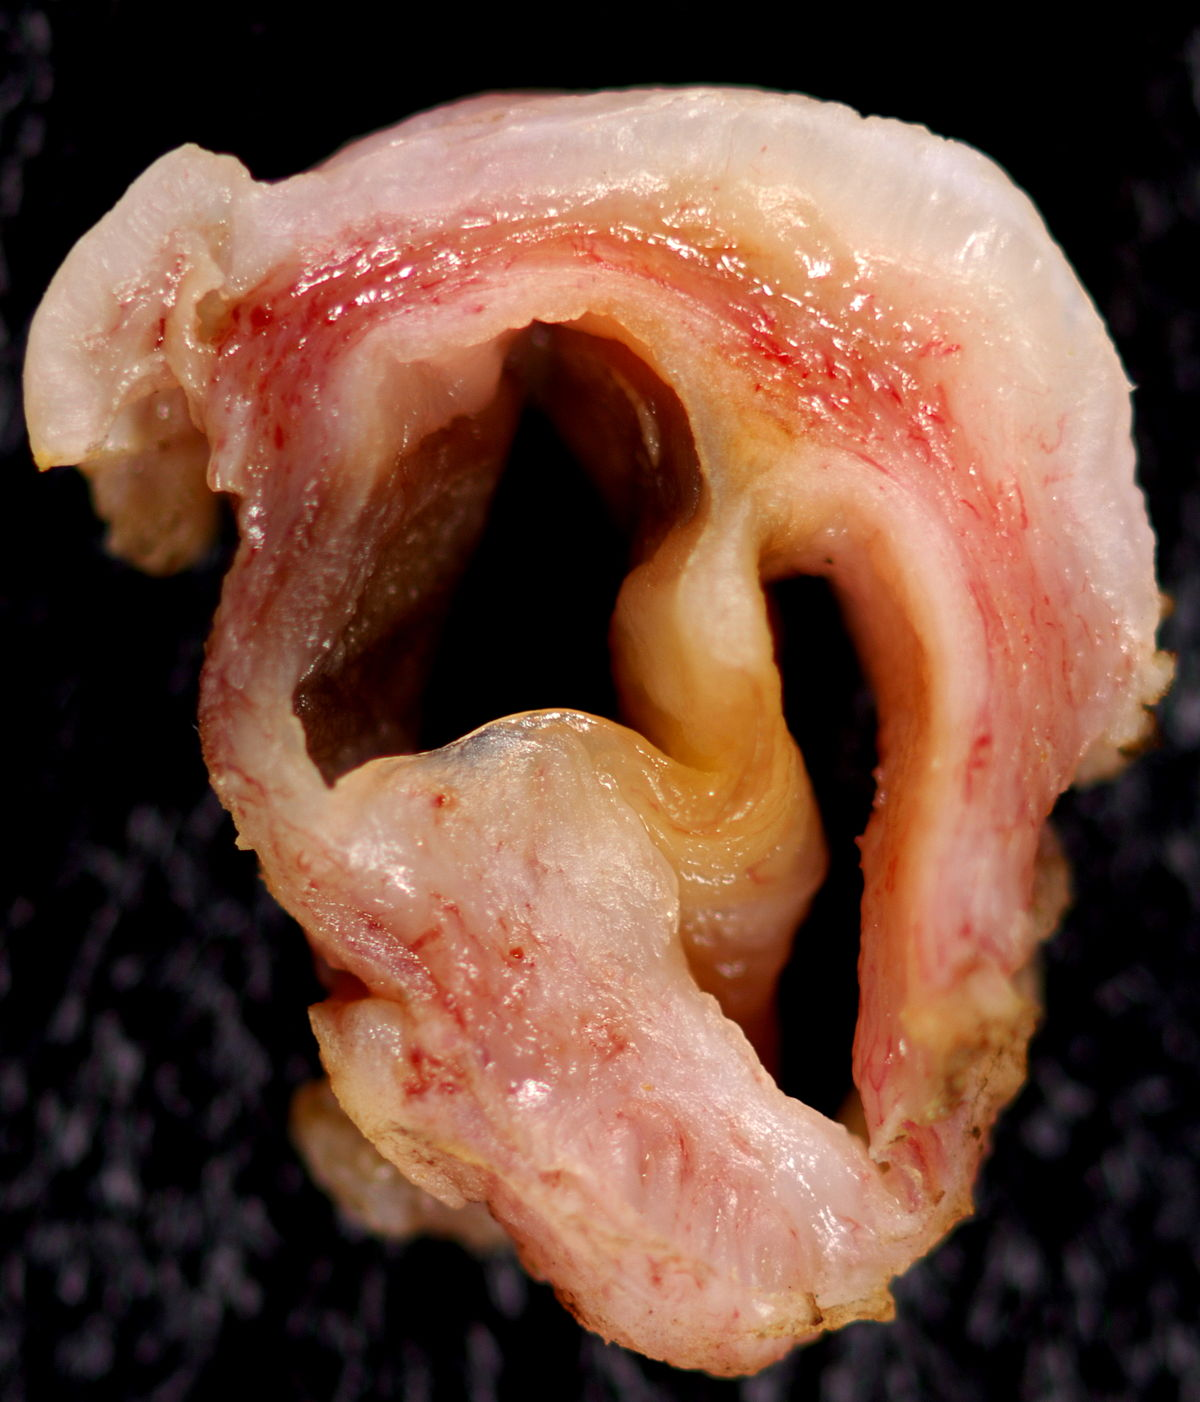 Inclusion Cyst Gartner Duct Cyst S